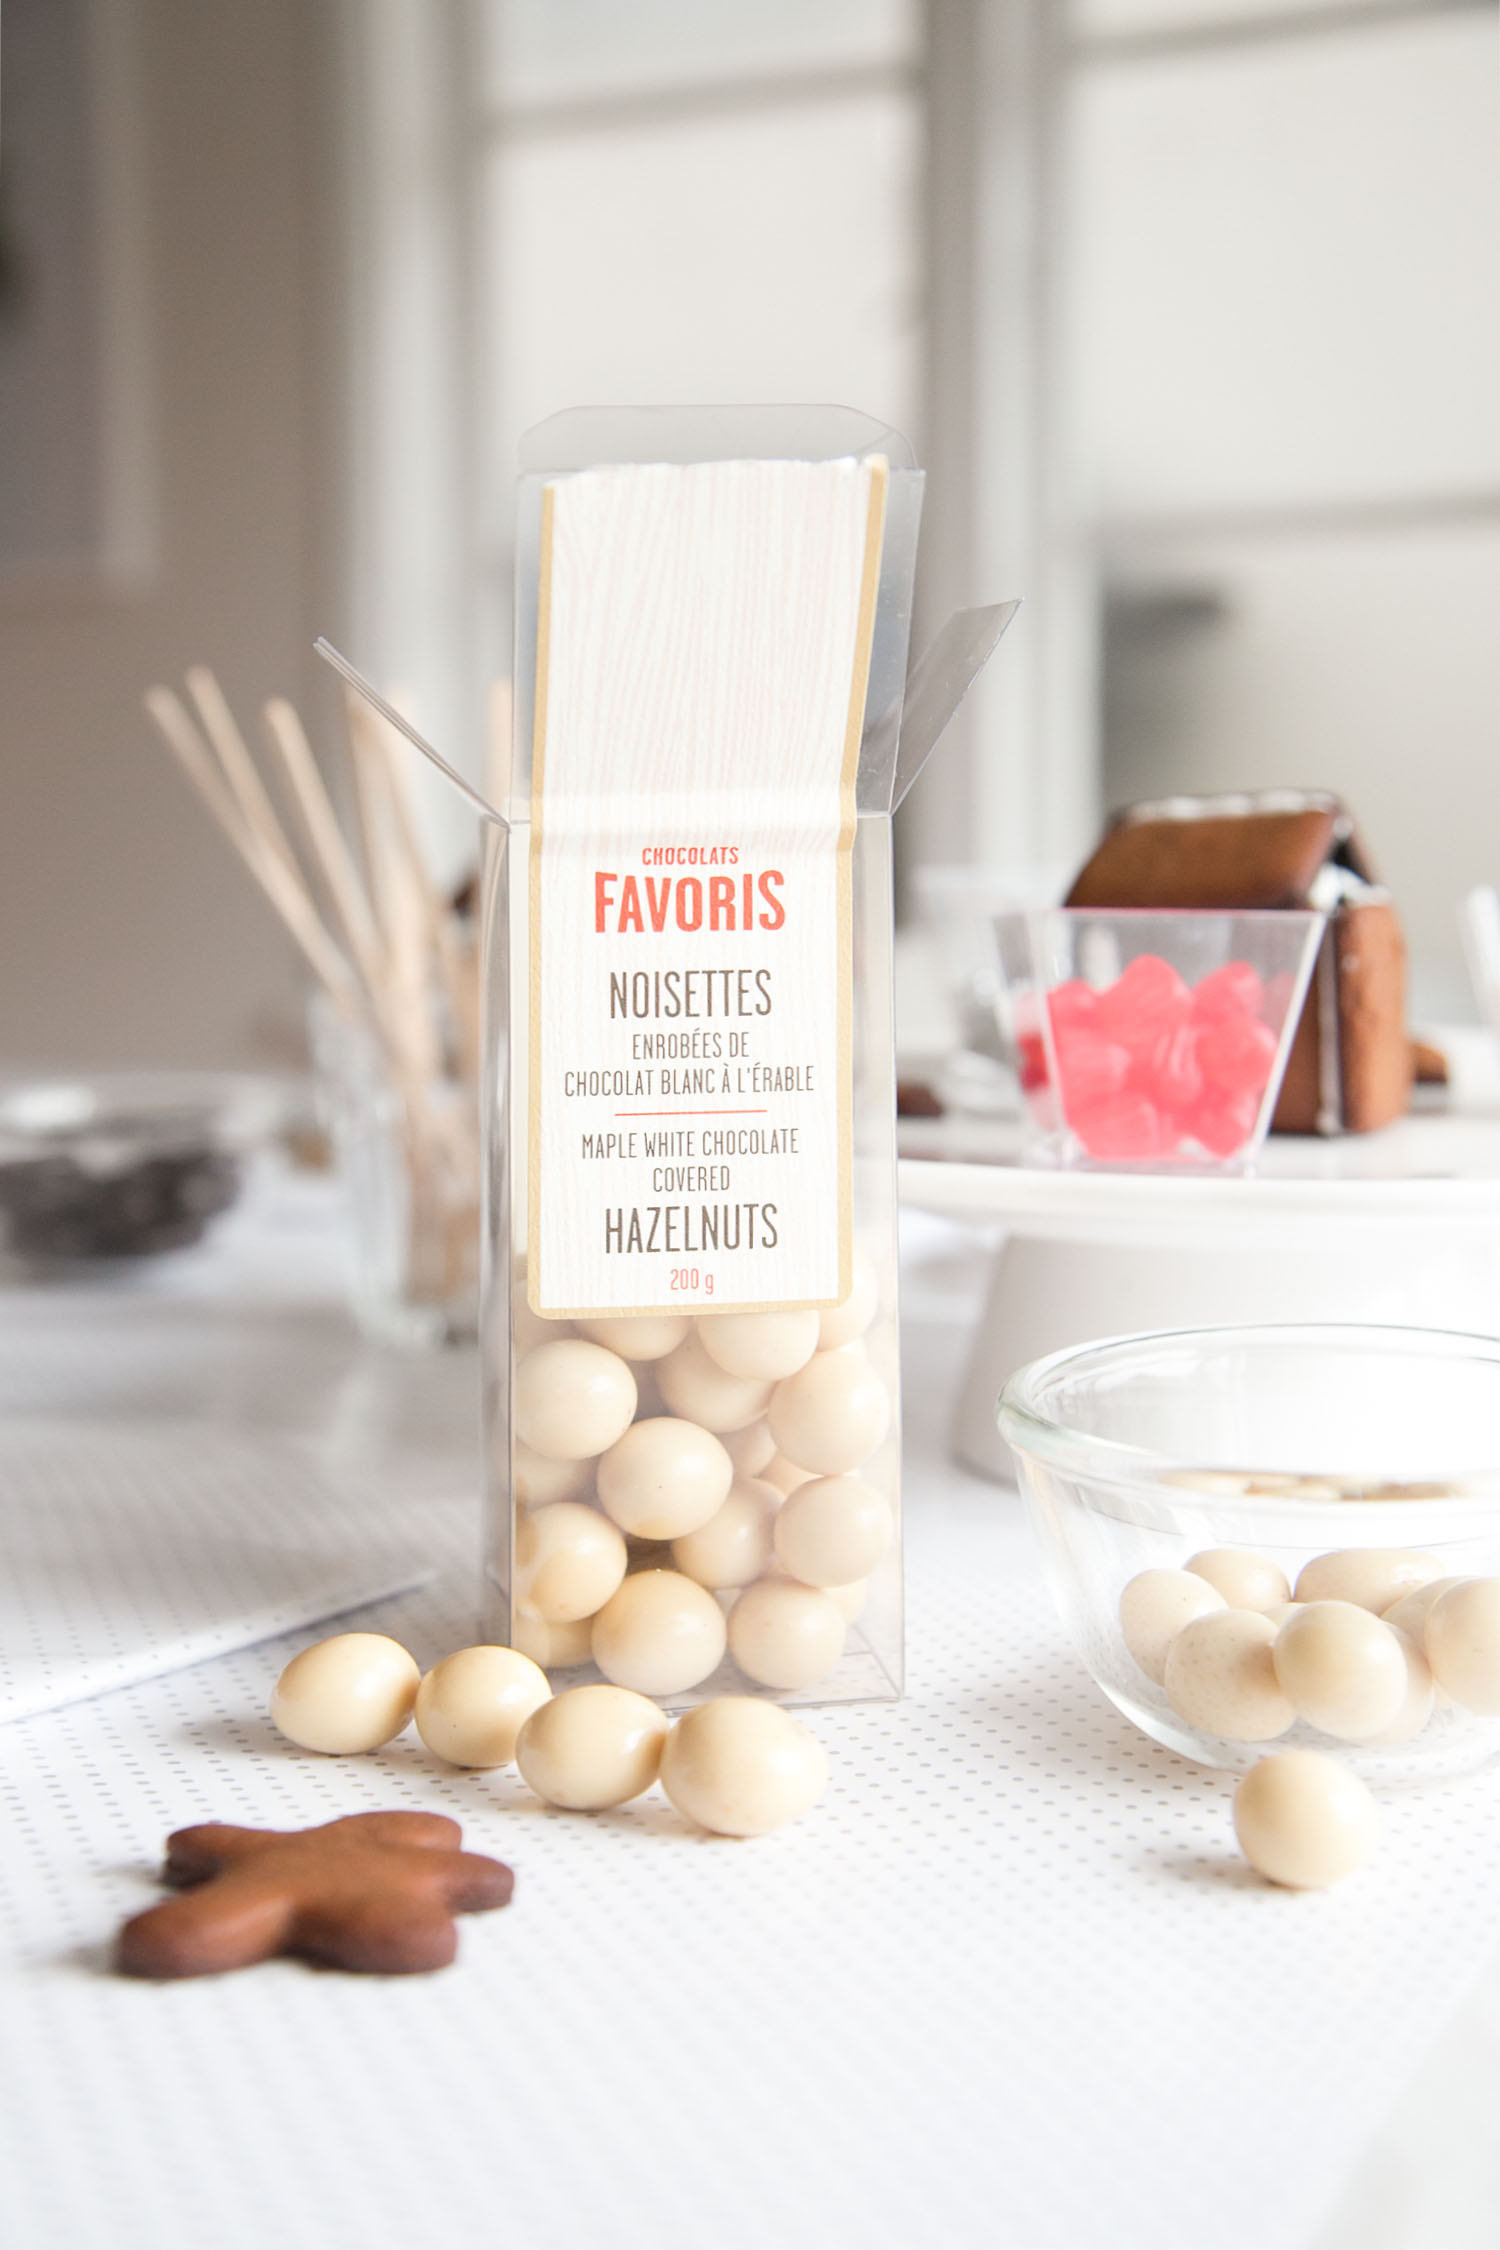 maple white chocolate hazelnuts from chocolats favoris